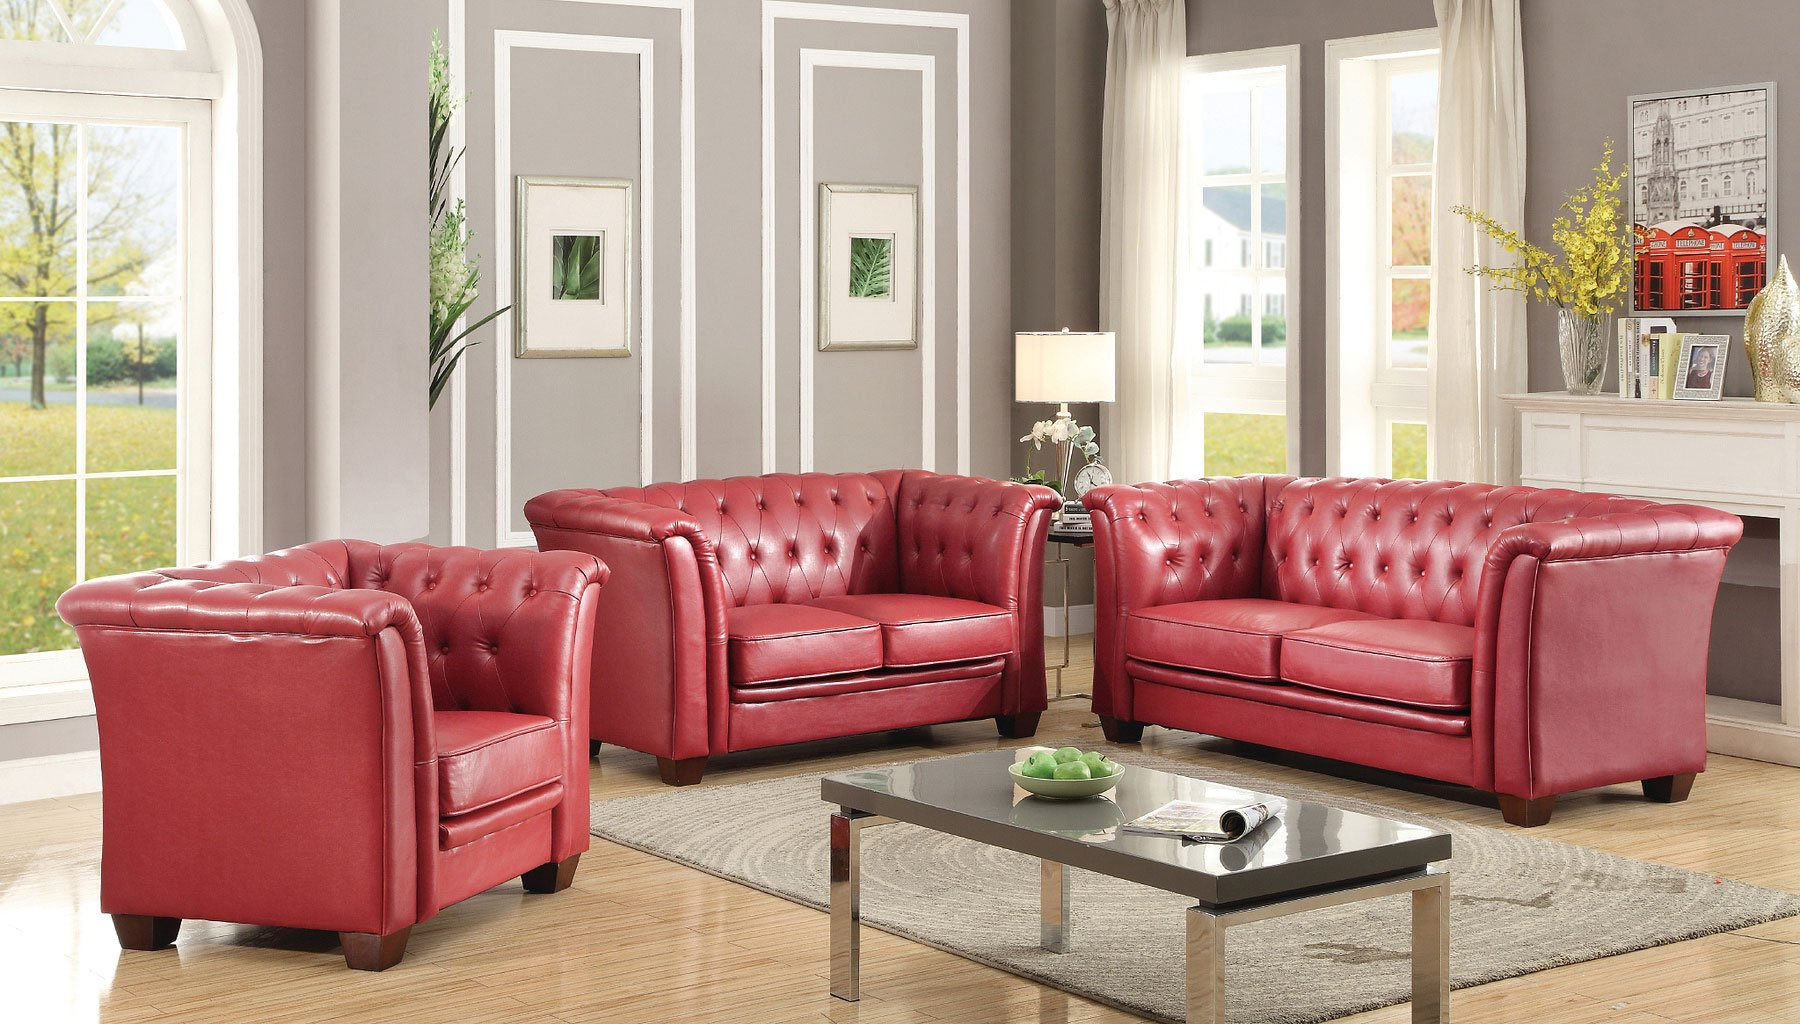 G329 Tufted Living Room Set Red Glory Furniture Furniture Cart